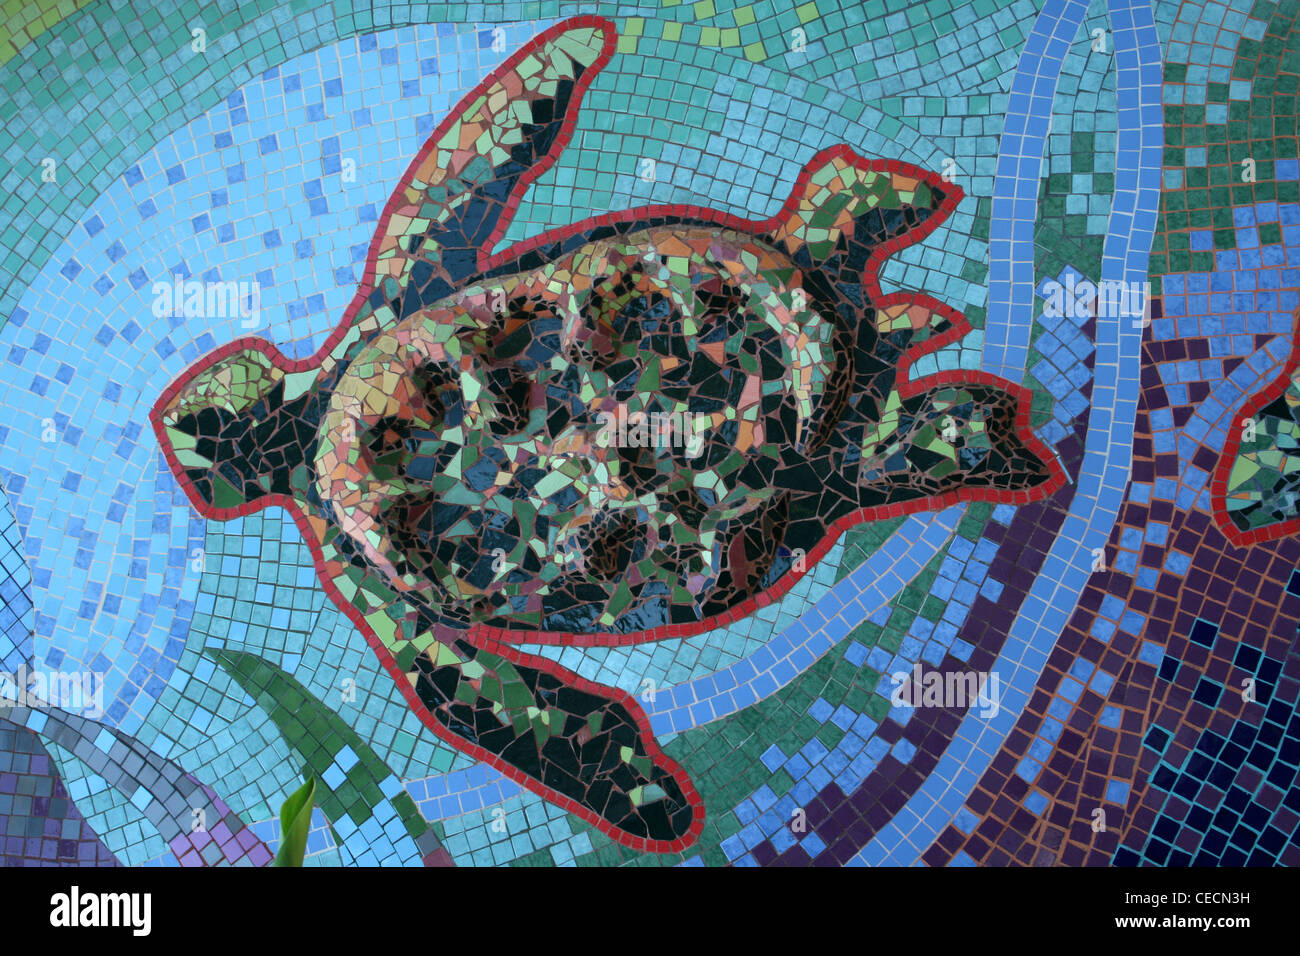 Turtle Mosaic Mural In Tortuguero Village - Translates as 'Land of Turtles', Costa Rica - Stock Image